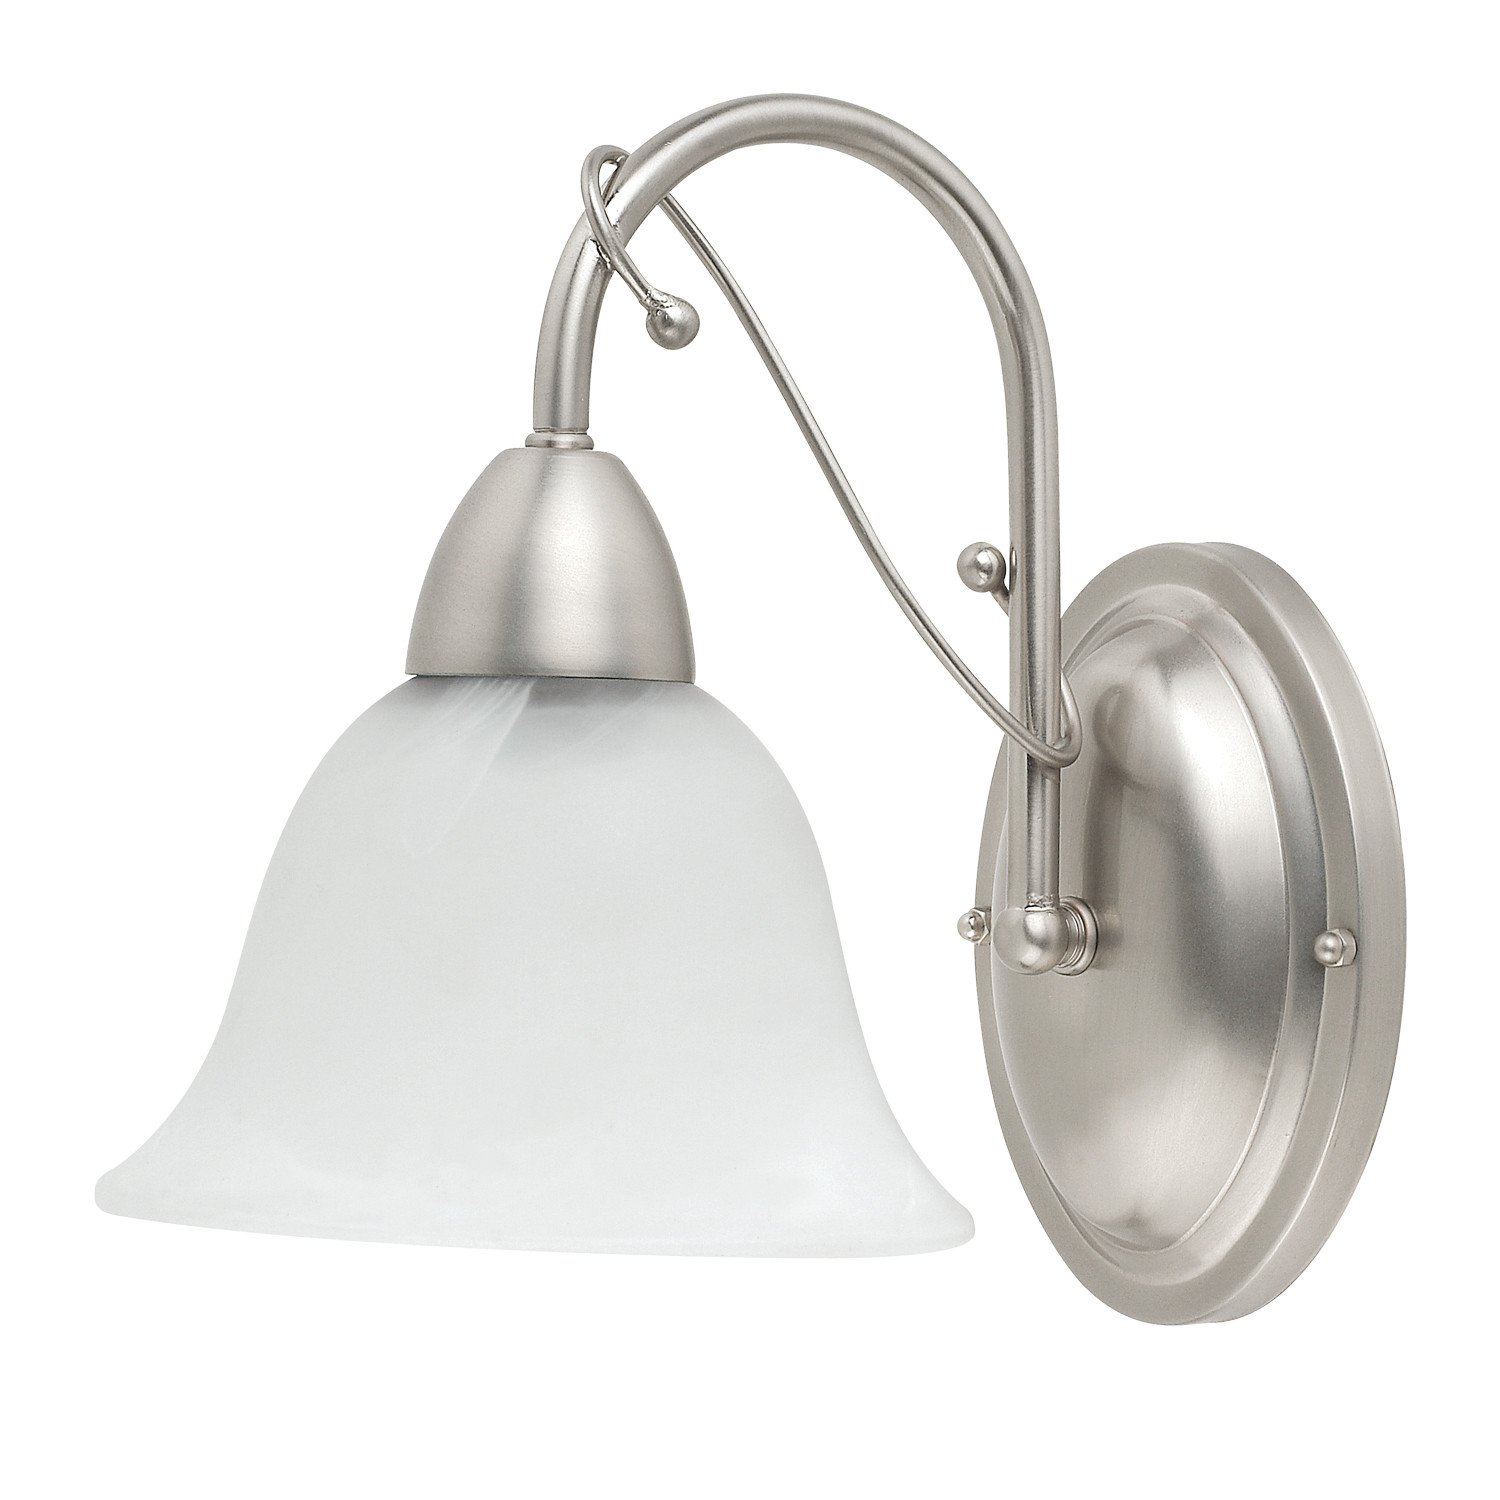 Globe Candice One-Light Downward Wall Sconce, Brushed Steel with Alabaster Globes #61064